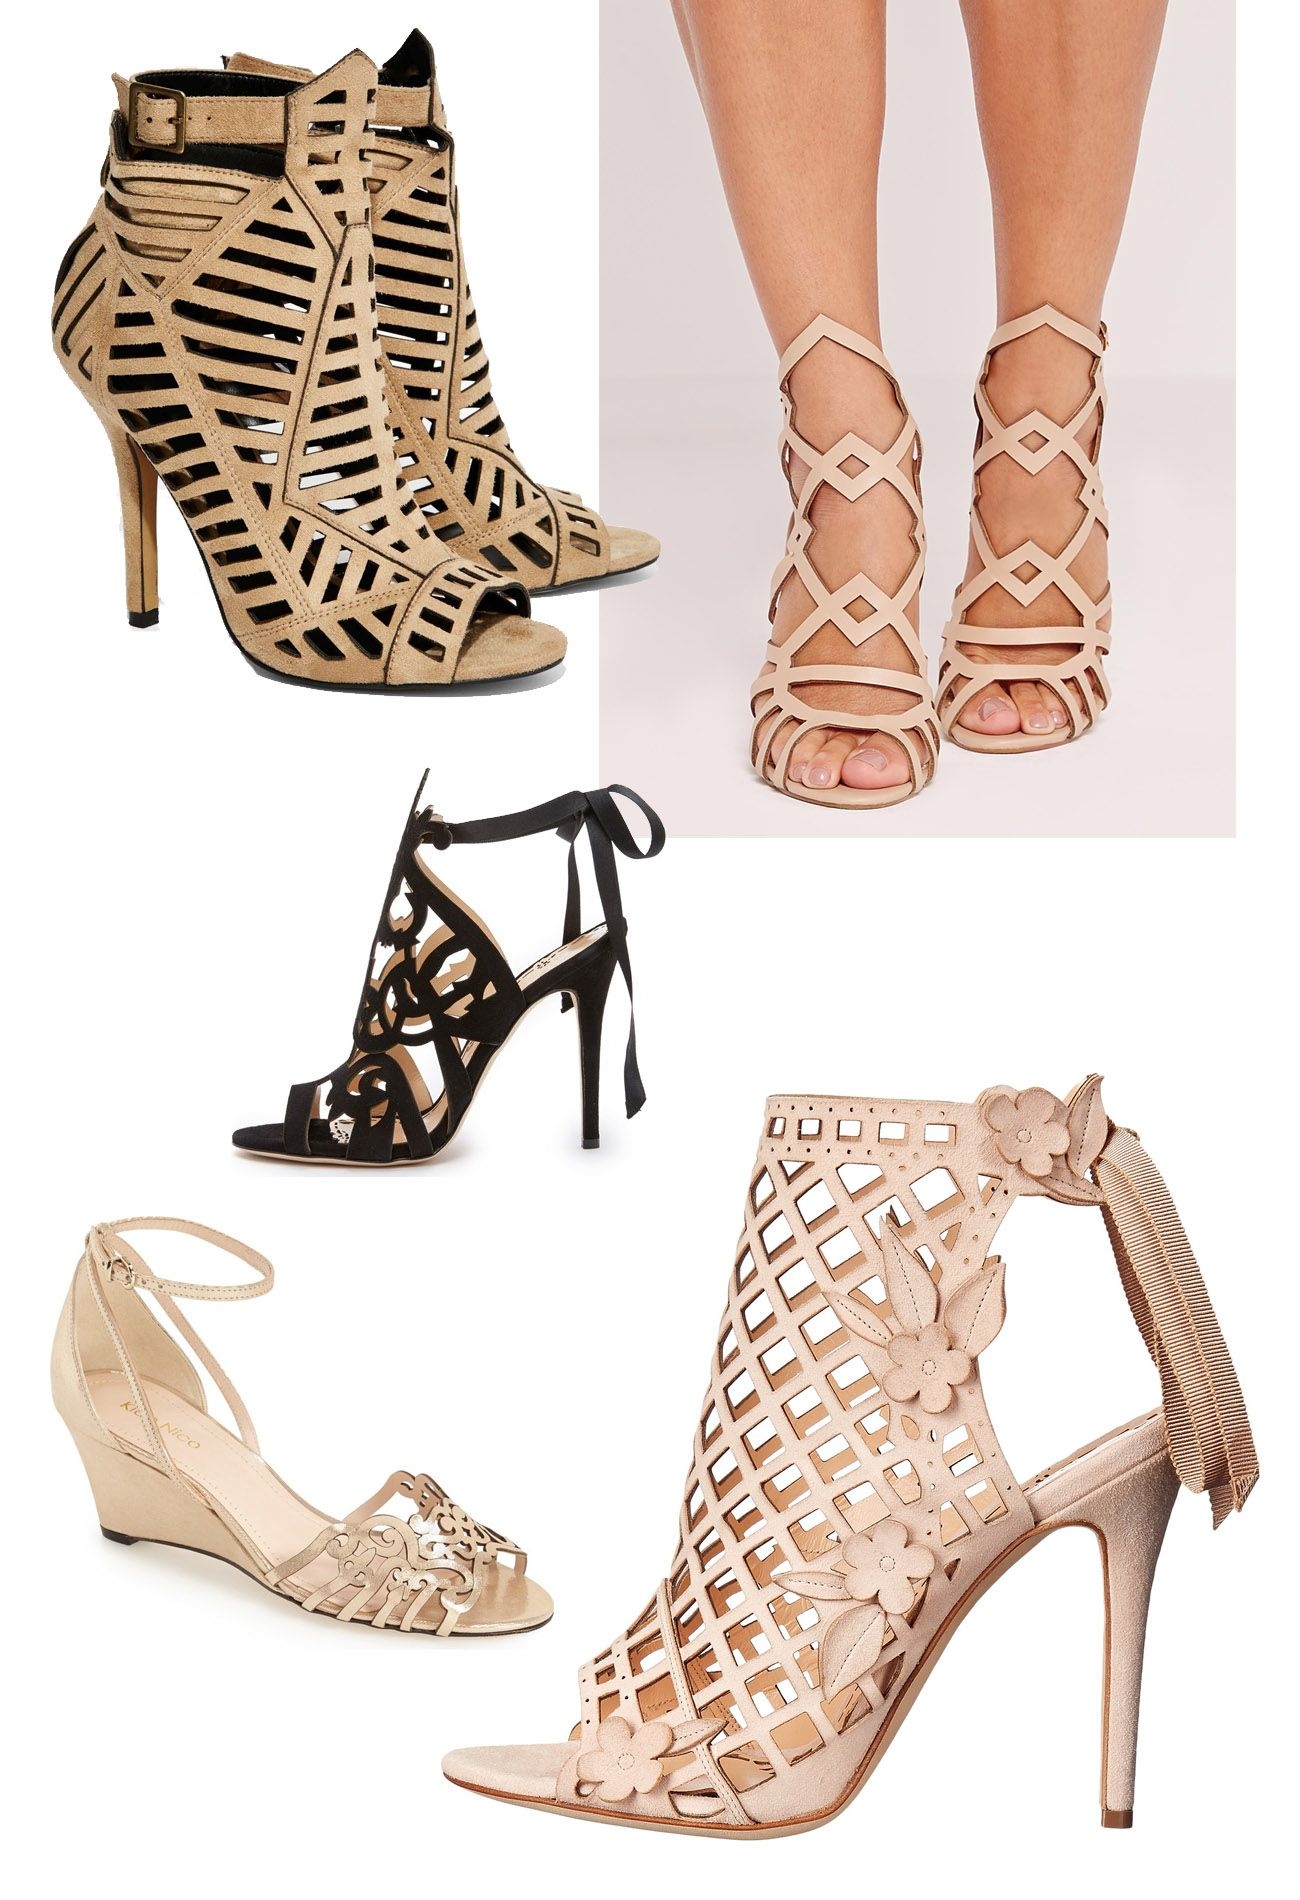 73a2fc2526b3 Laser cut shoes for your wedding